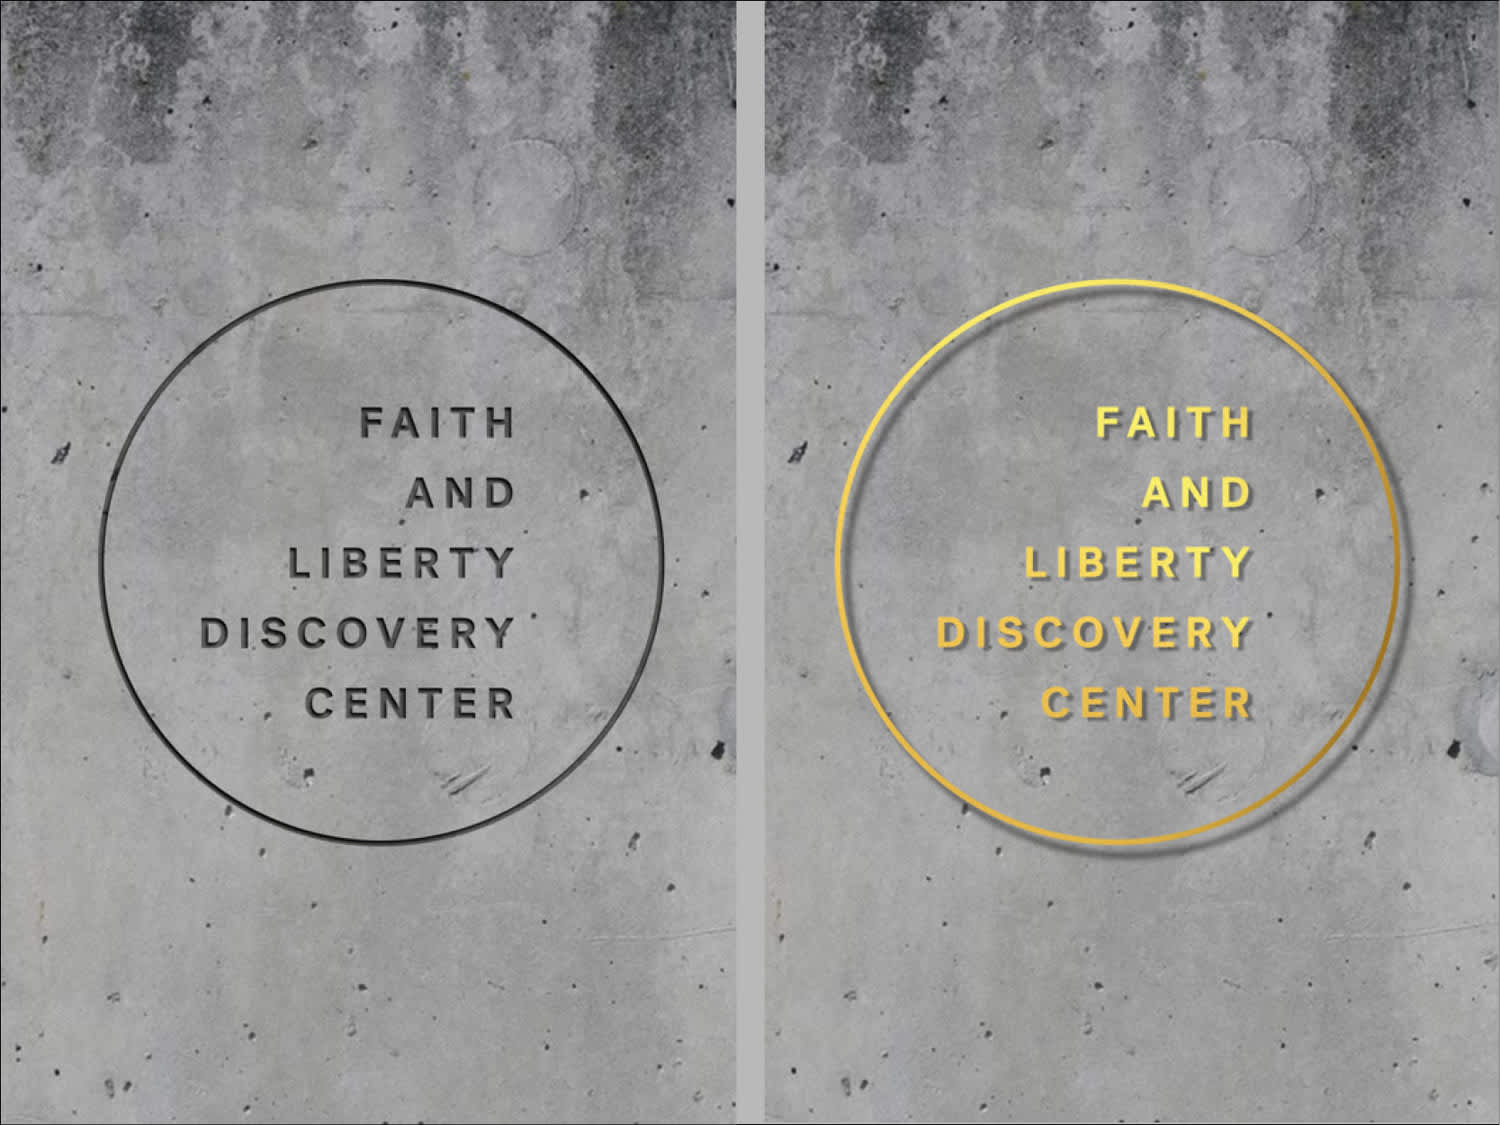 Faith and Liberty Discovery Center: Branding